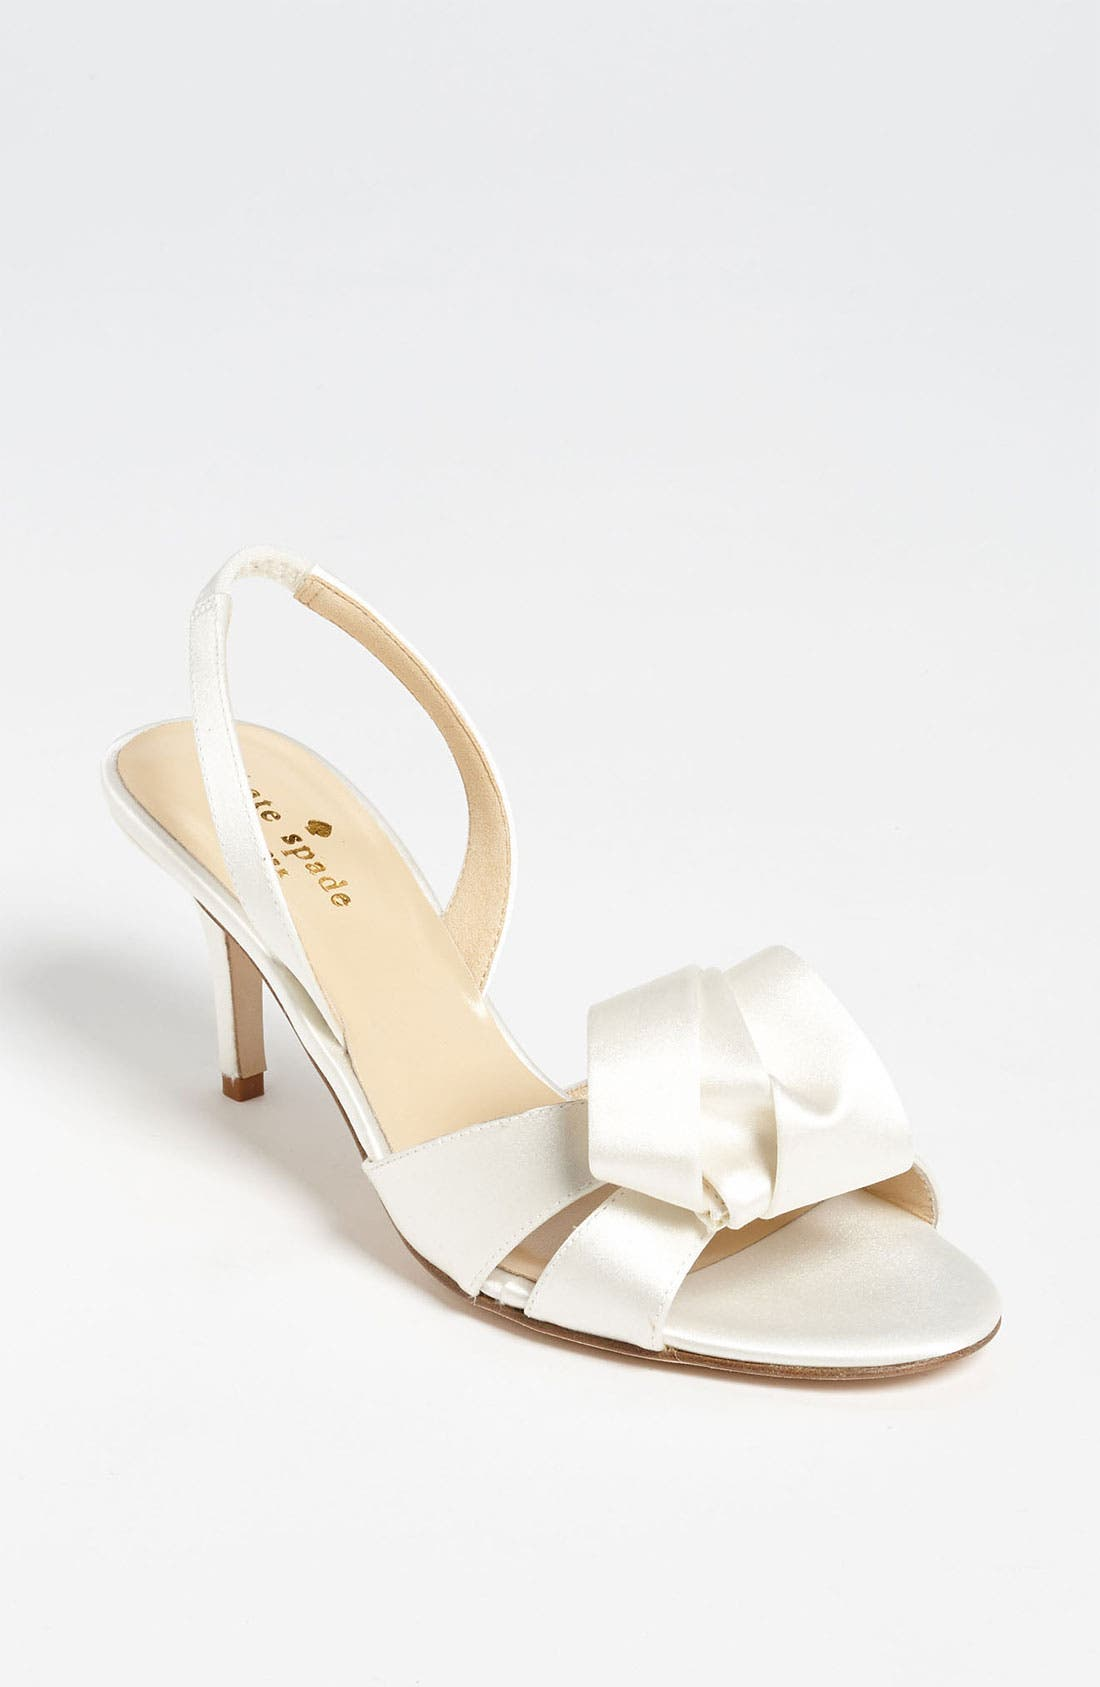 Alternate Image 1 Selected - kate spade new york 'madison' sandal (Women)